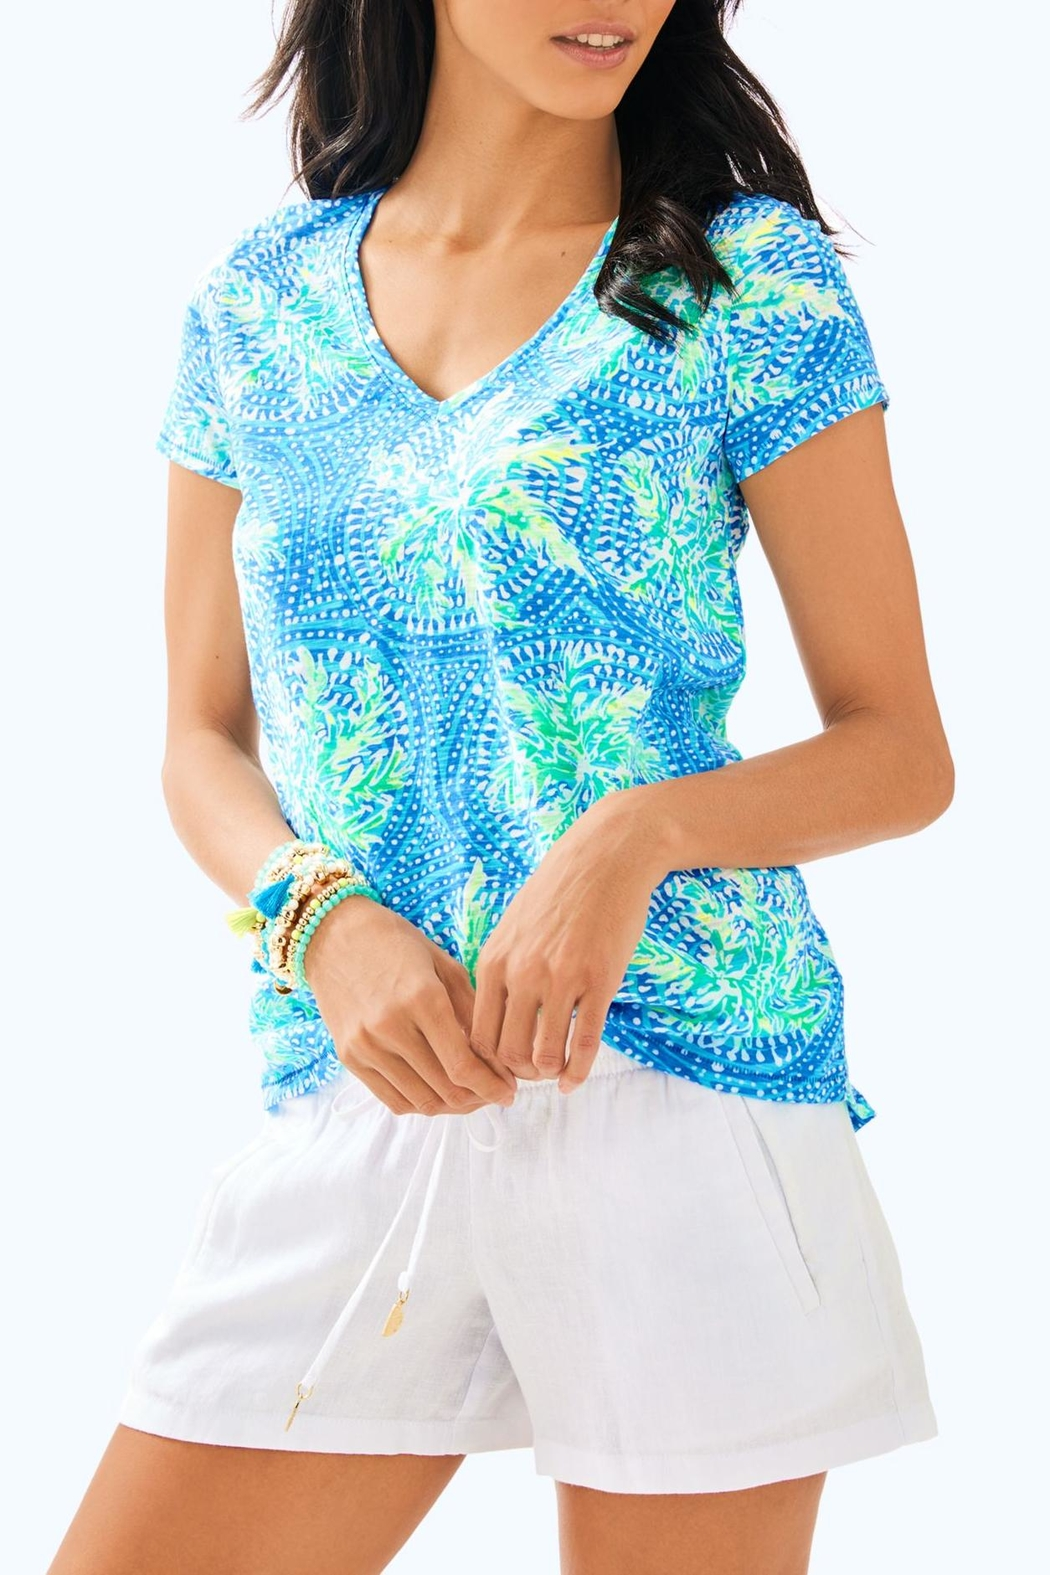 Lilly Pulitzer Etta V-Neck Top - Main Image